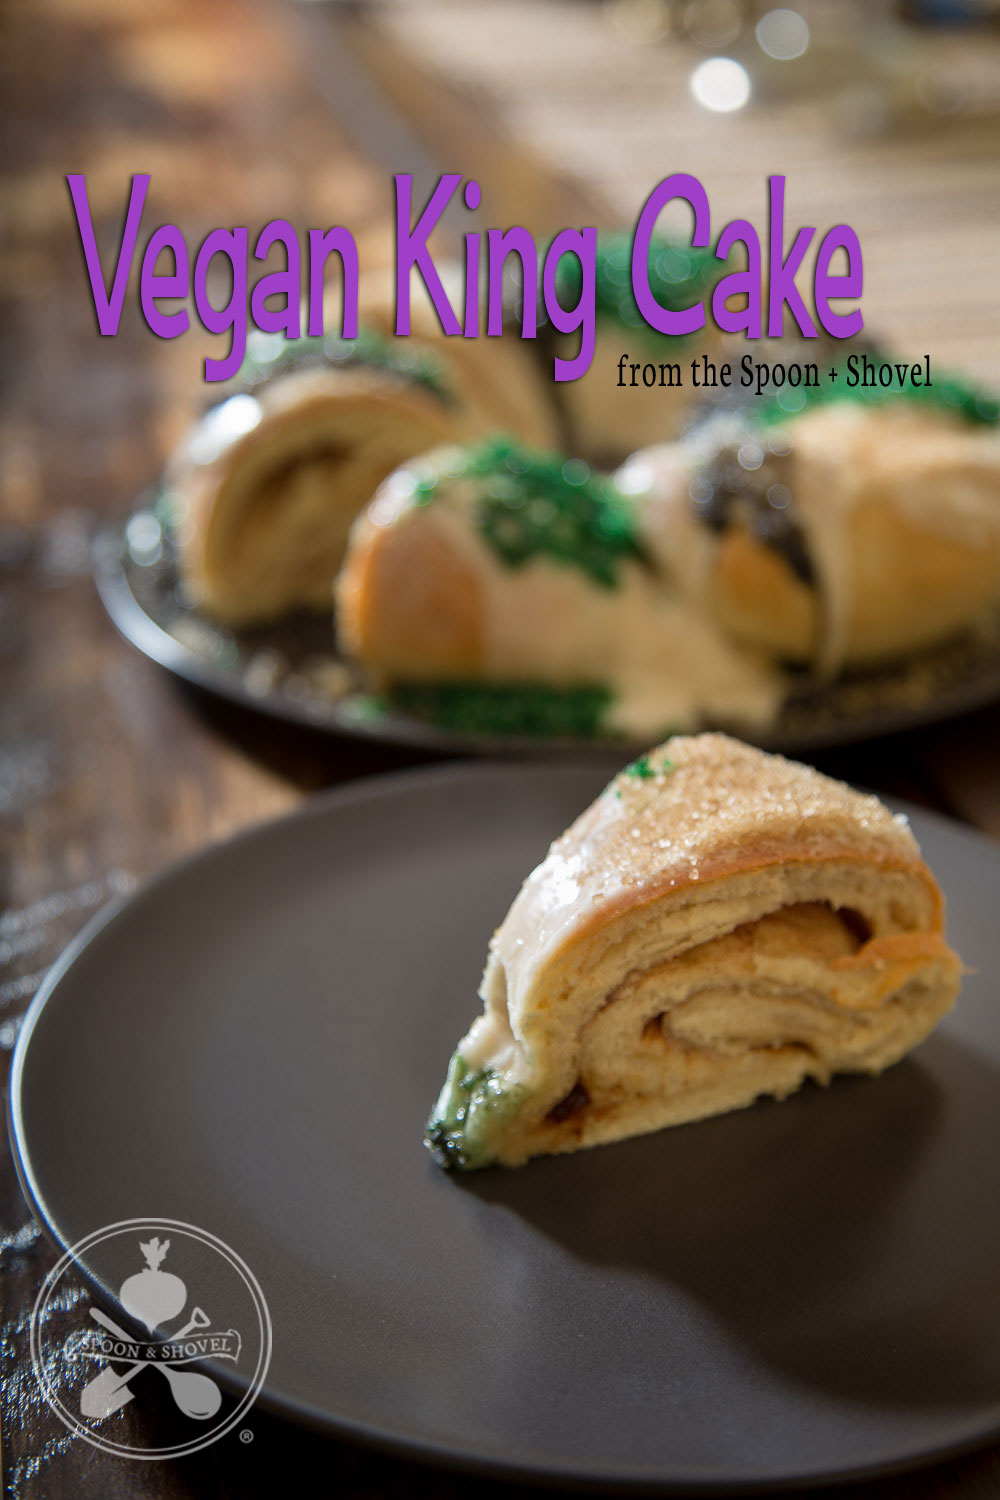 Vegan king cake from The Spoon + Shovel